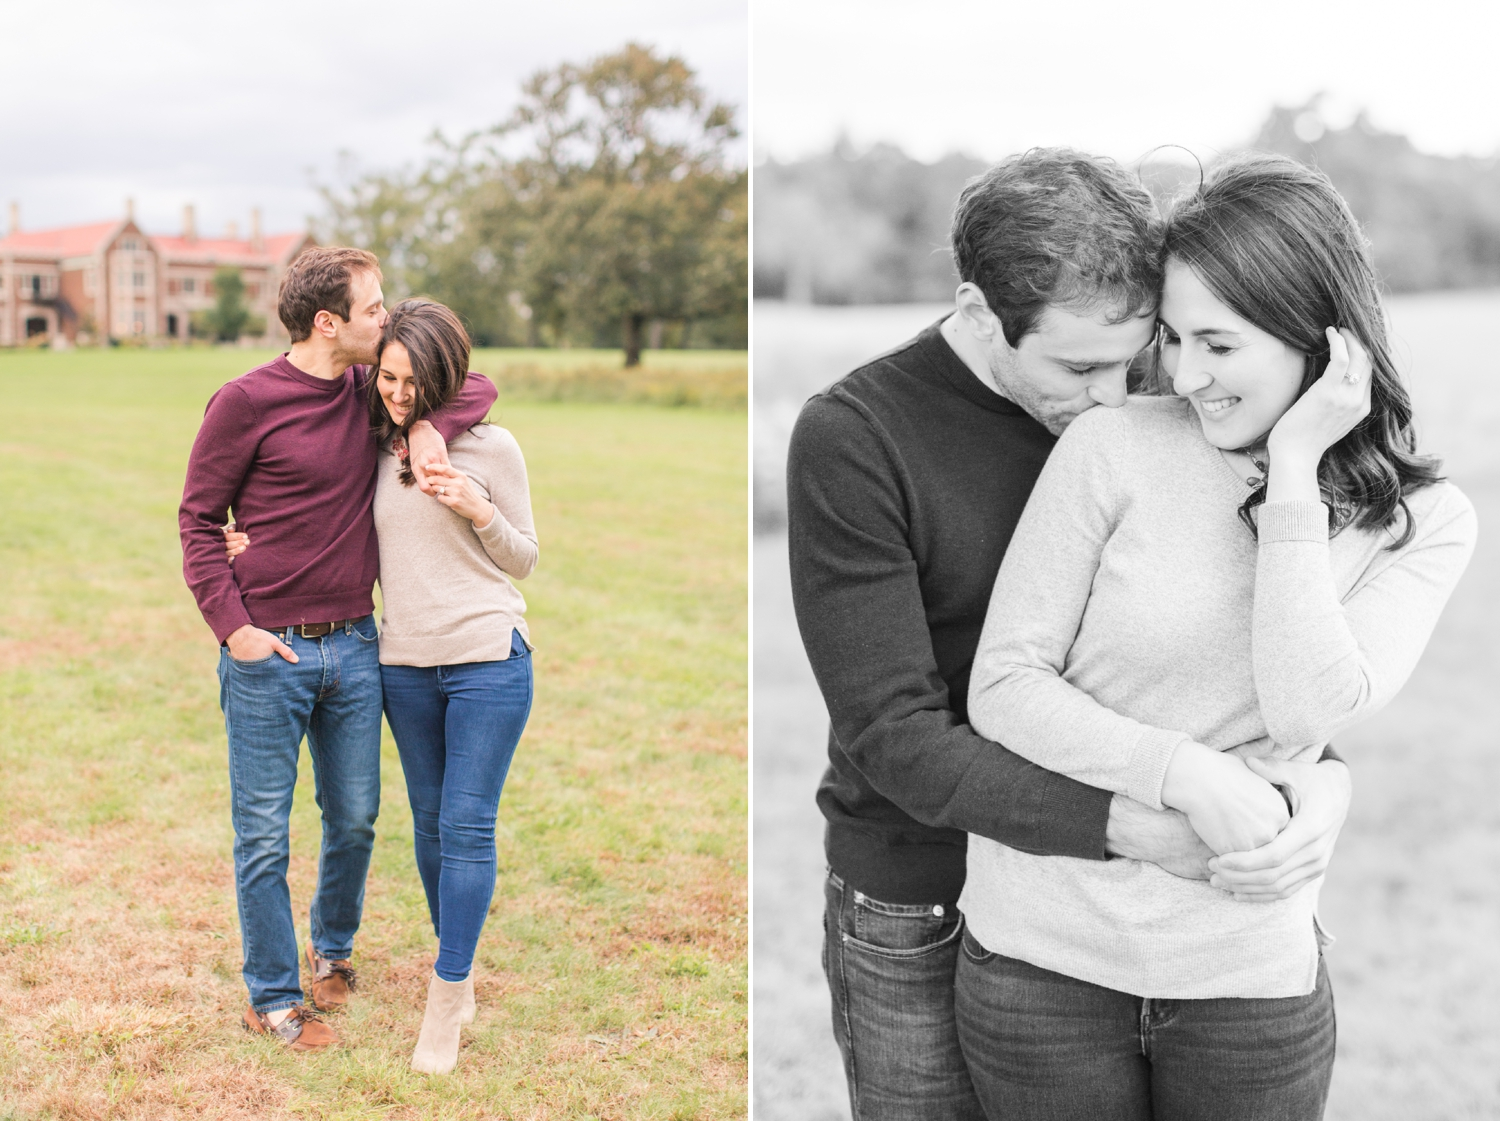 waveny-park-engagement-session-new-canaan-connecticut-westchester-nyc-hawaii-wedding-photographer-shaina-lee-photography-photo